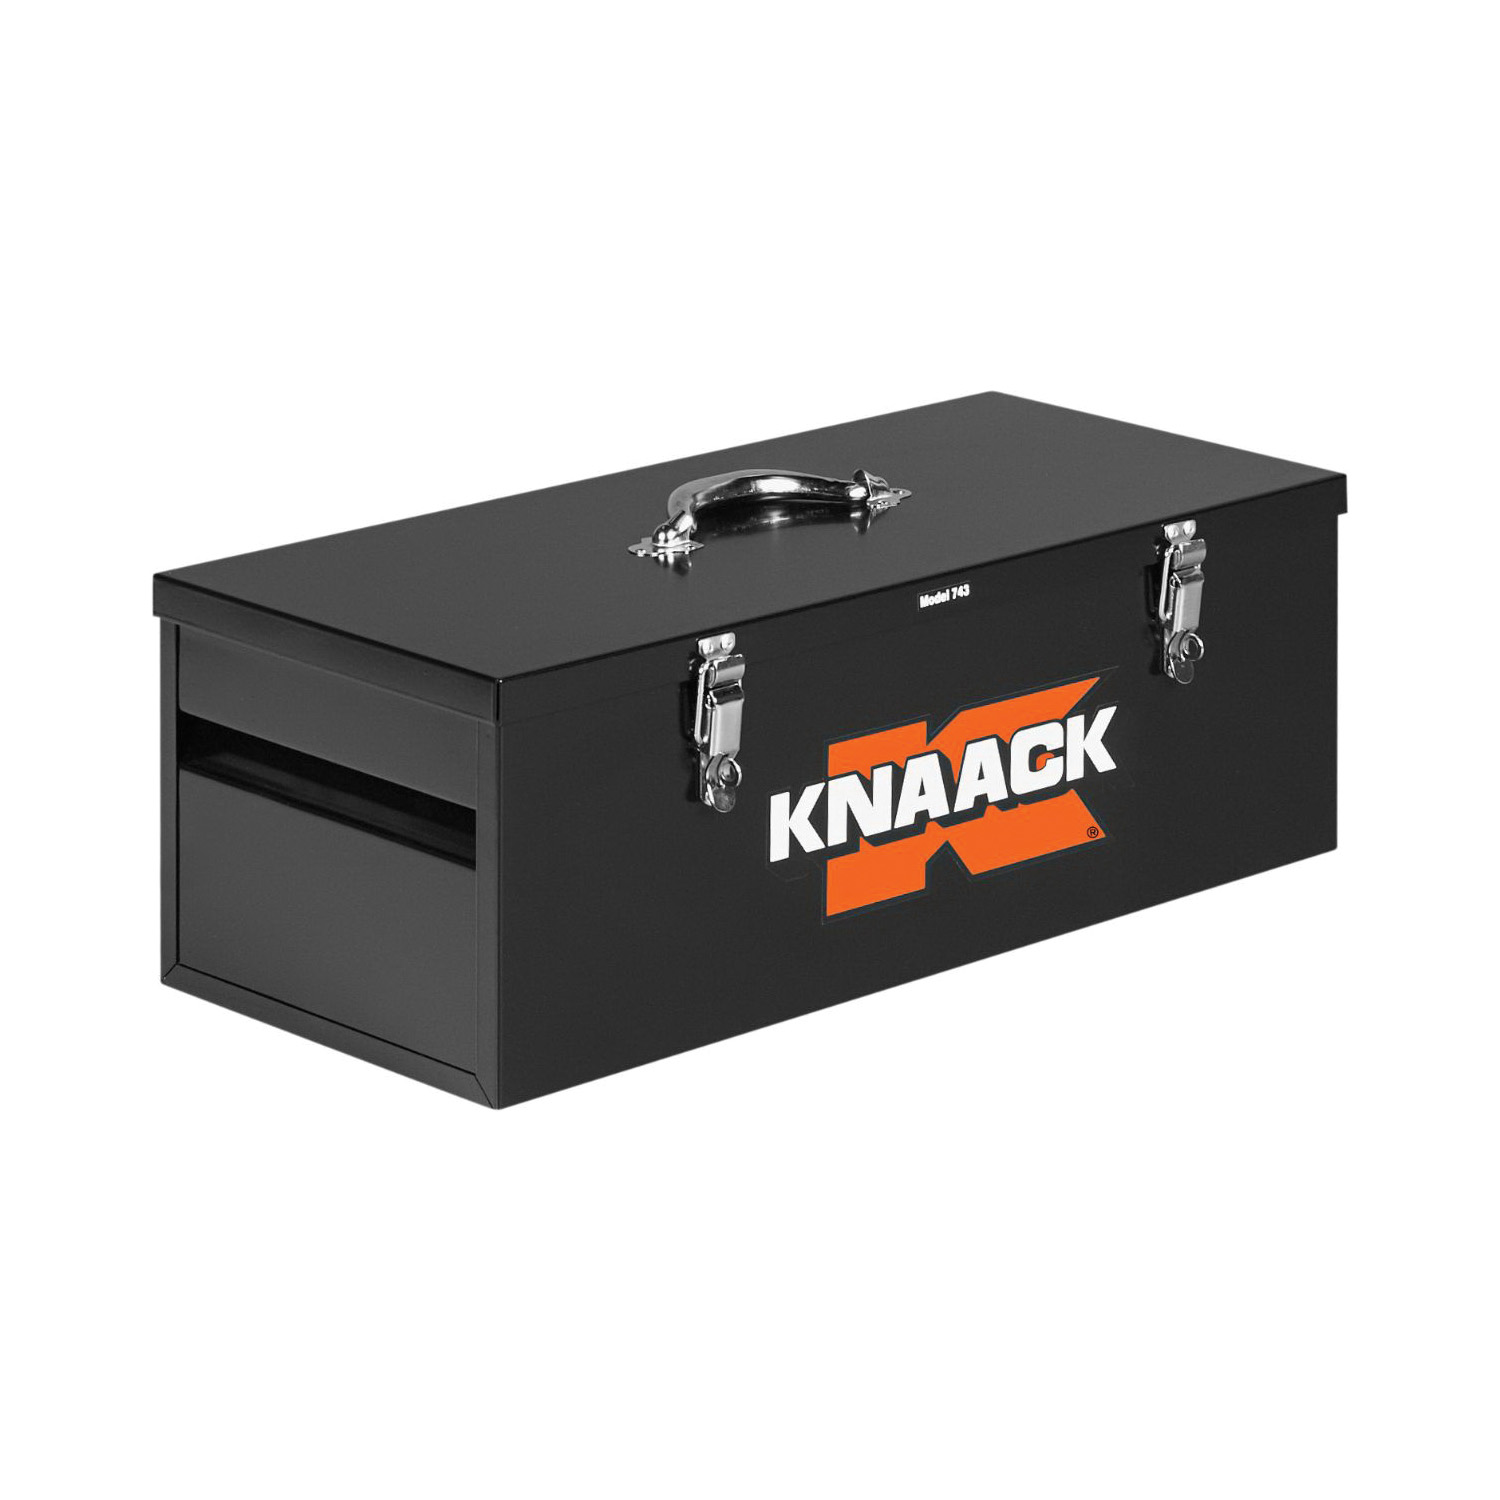 KNAACK® 743 Hand Tool Box, 9-1/2 in x 11 in W x 26 in D, 1.5 cu-ft Storage, Steel